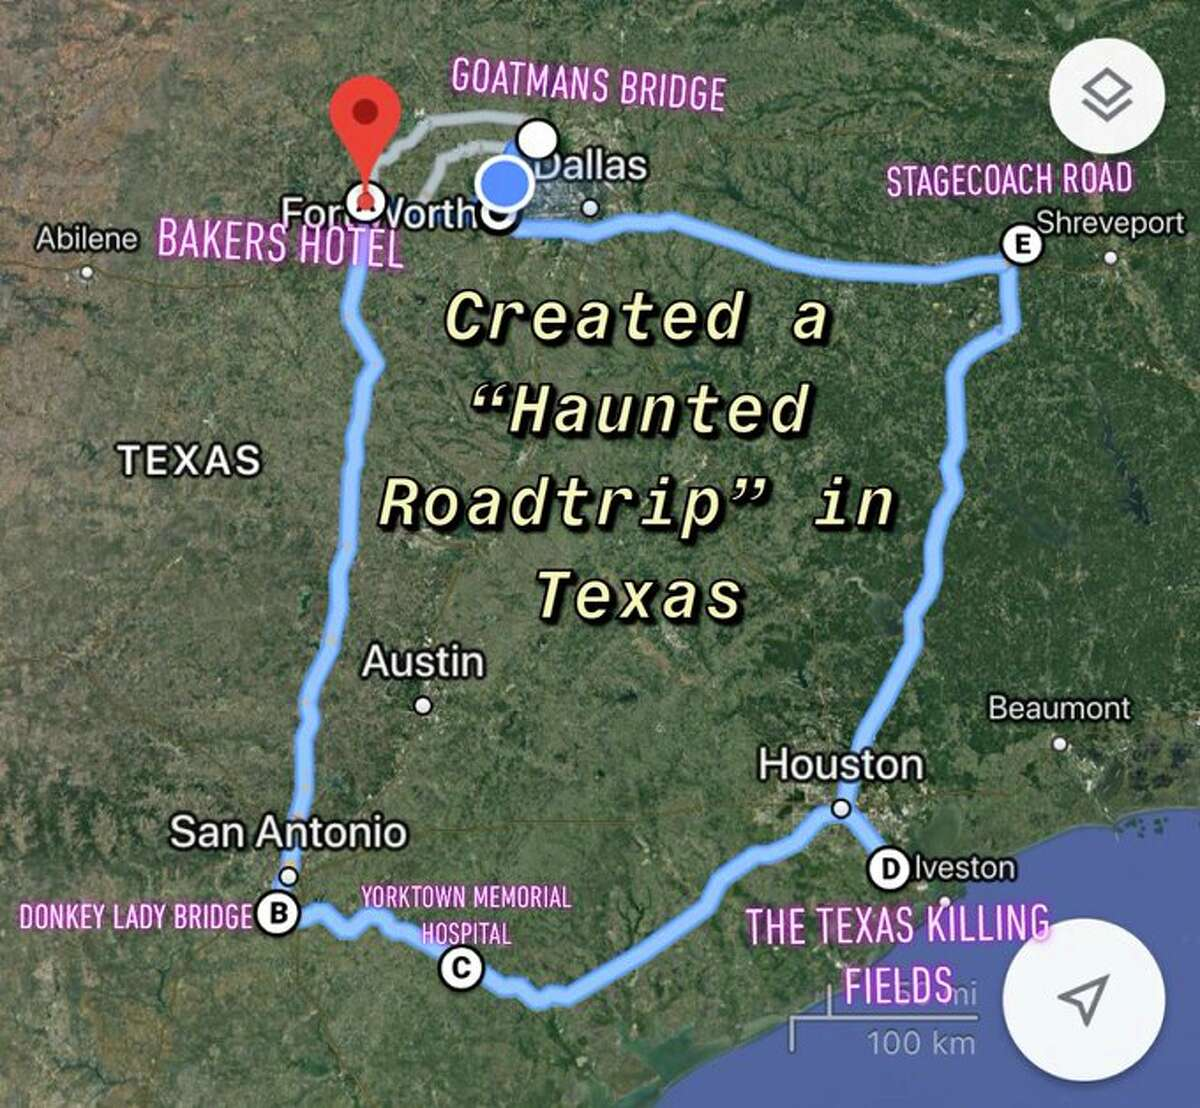 A spooky San Antonio location landed on a